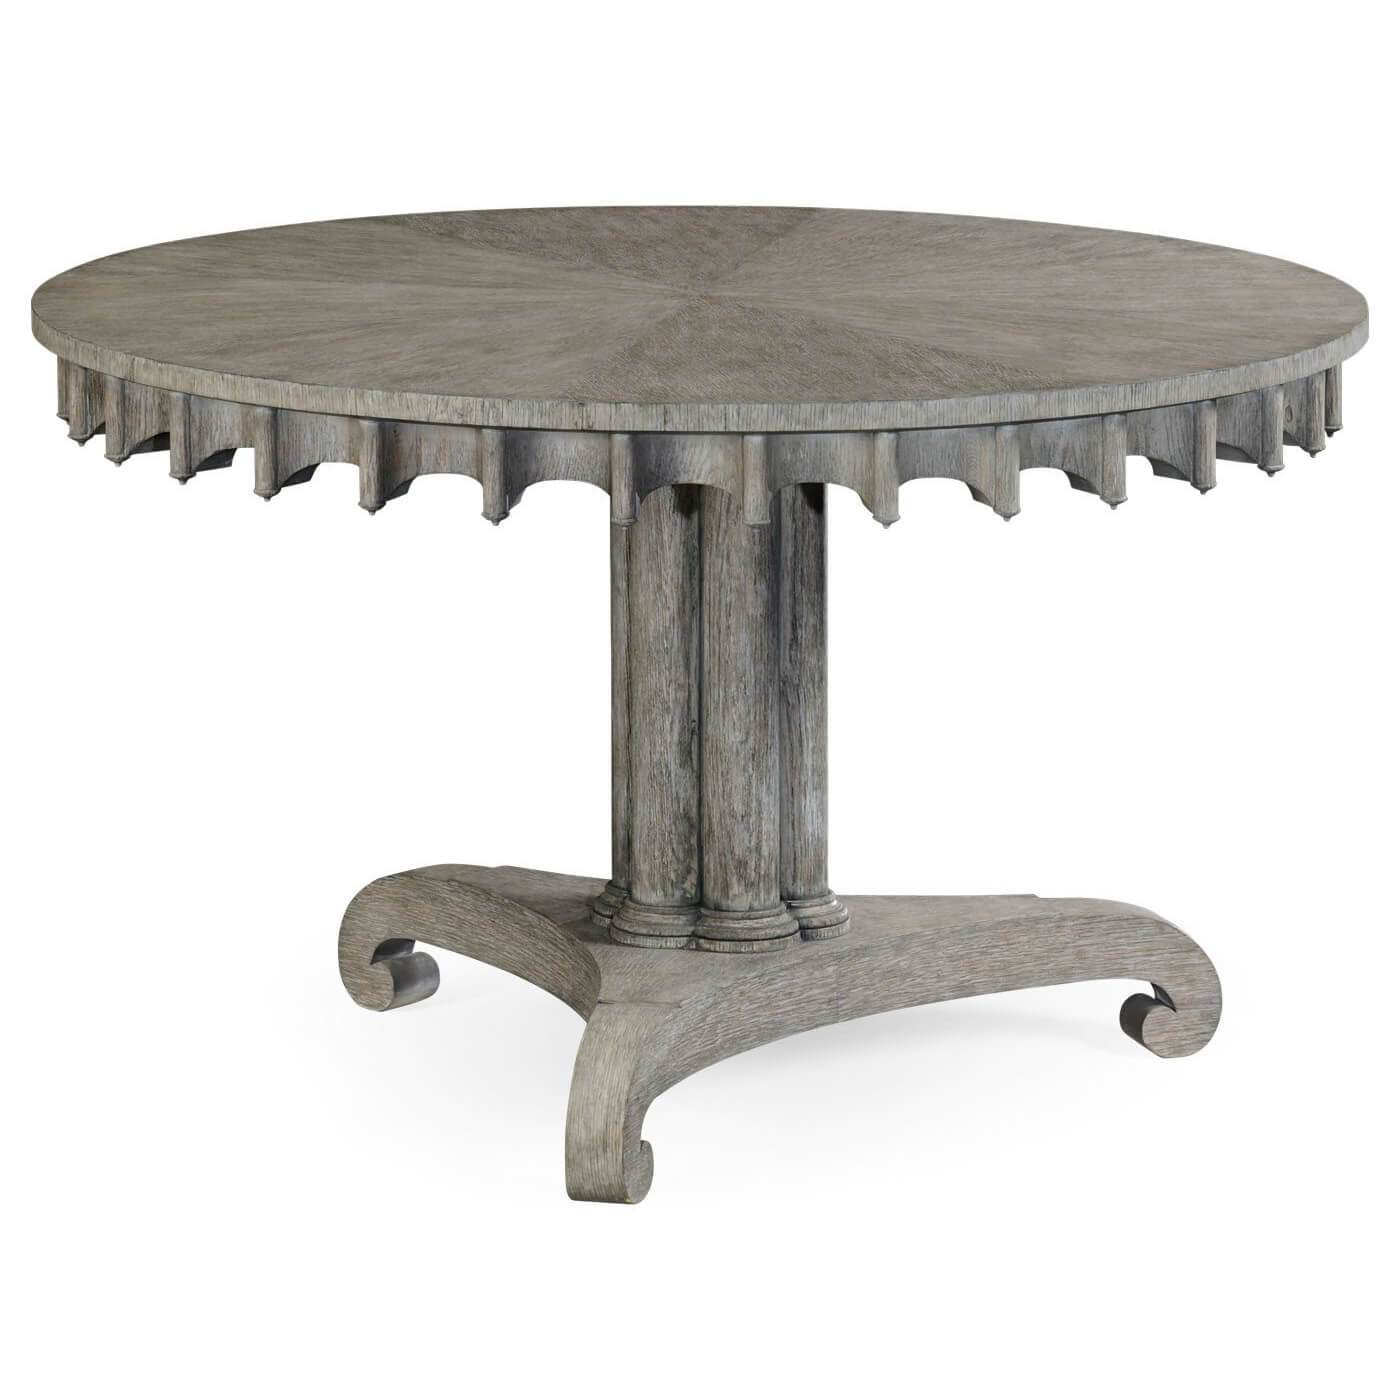 Strange English Gothic Greyed Oak Center Table Gmtry Best Dining Table And Chair Ideas Images Gmtryco